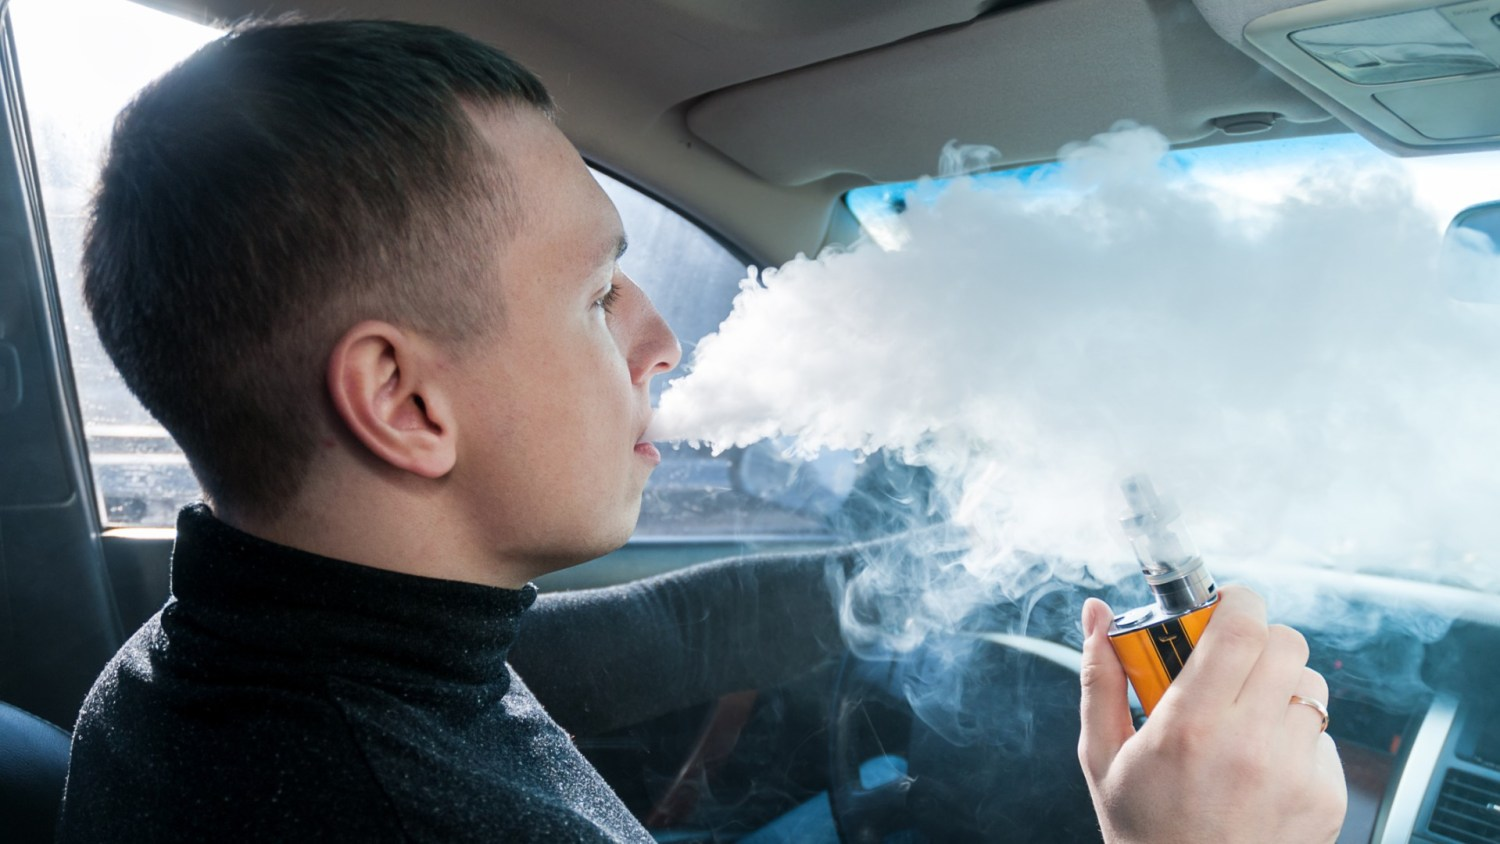 Vaping while driving